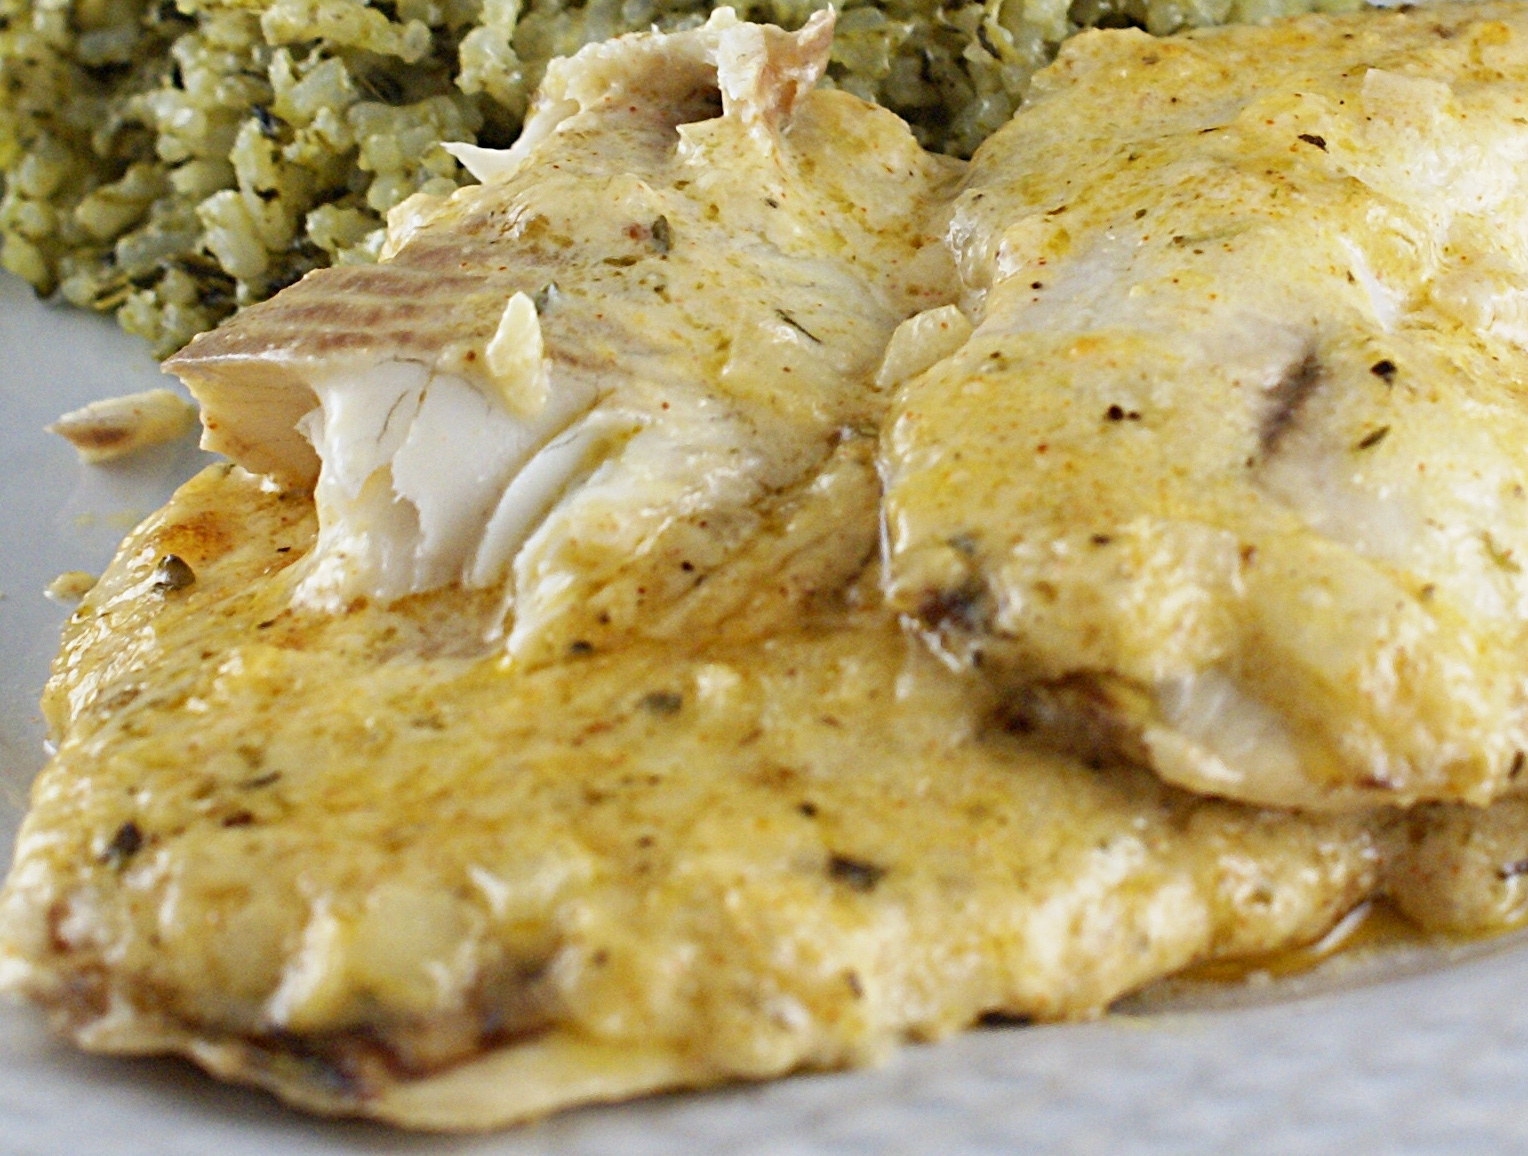 ... cajun tilapia baked tilapia is a must pan seared oven baked or hot